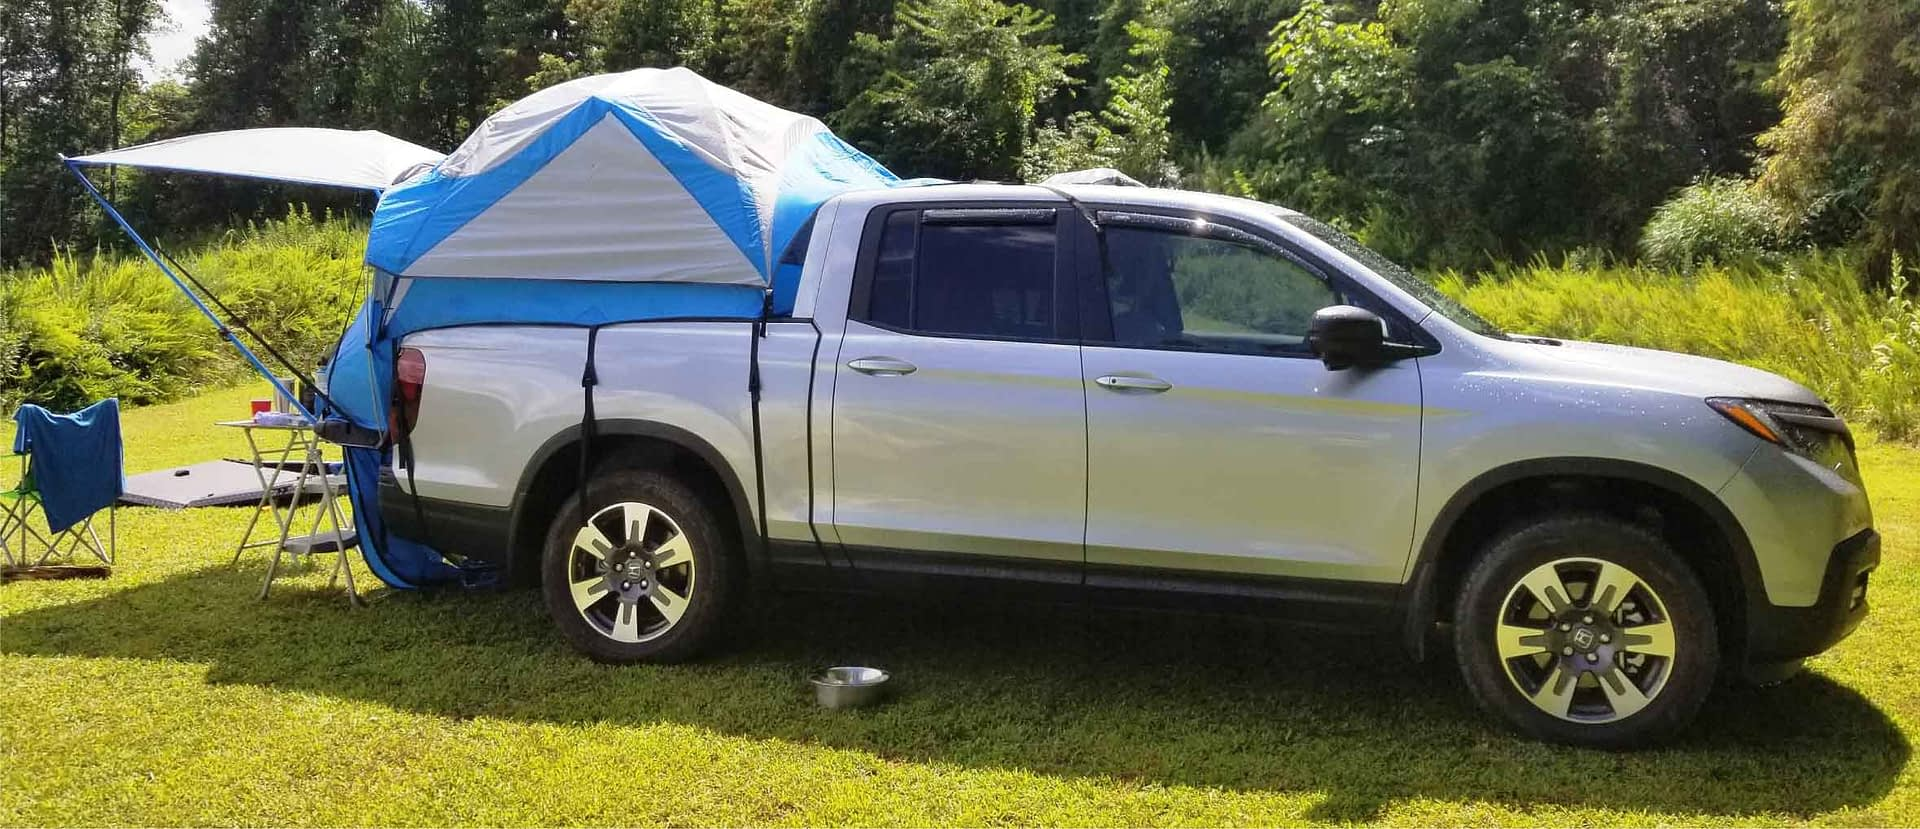 Best Camping Truck Tents - OUTDOOR FAMILY 101